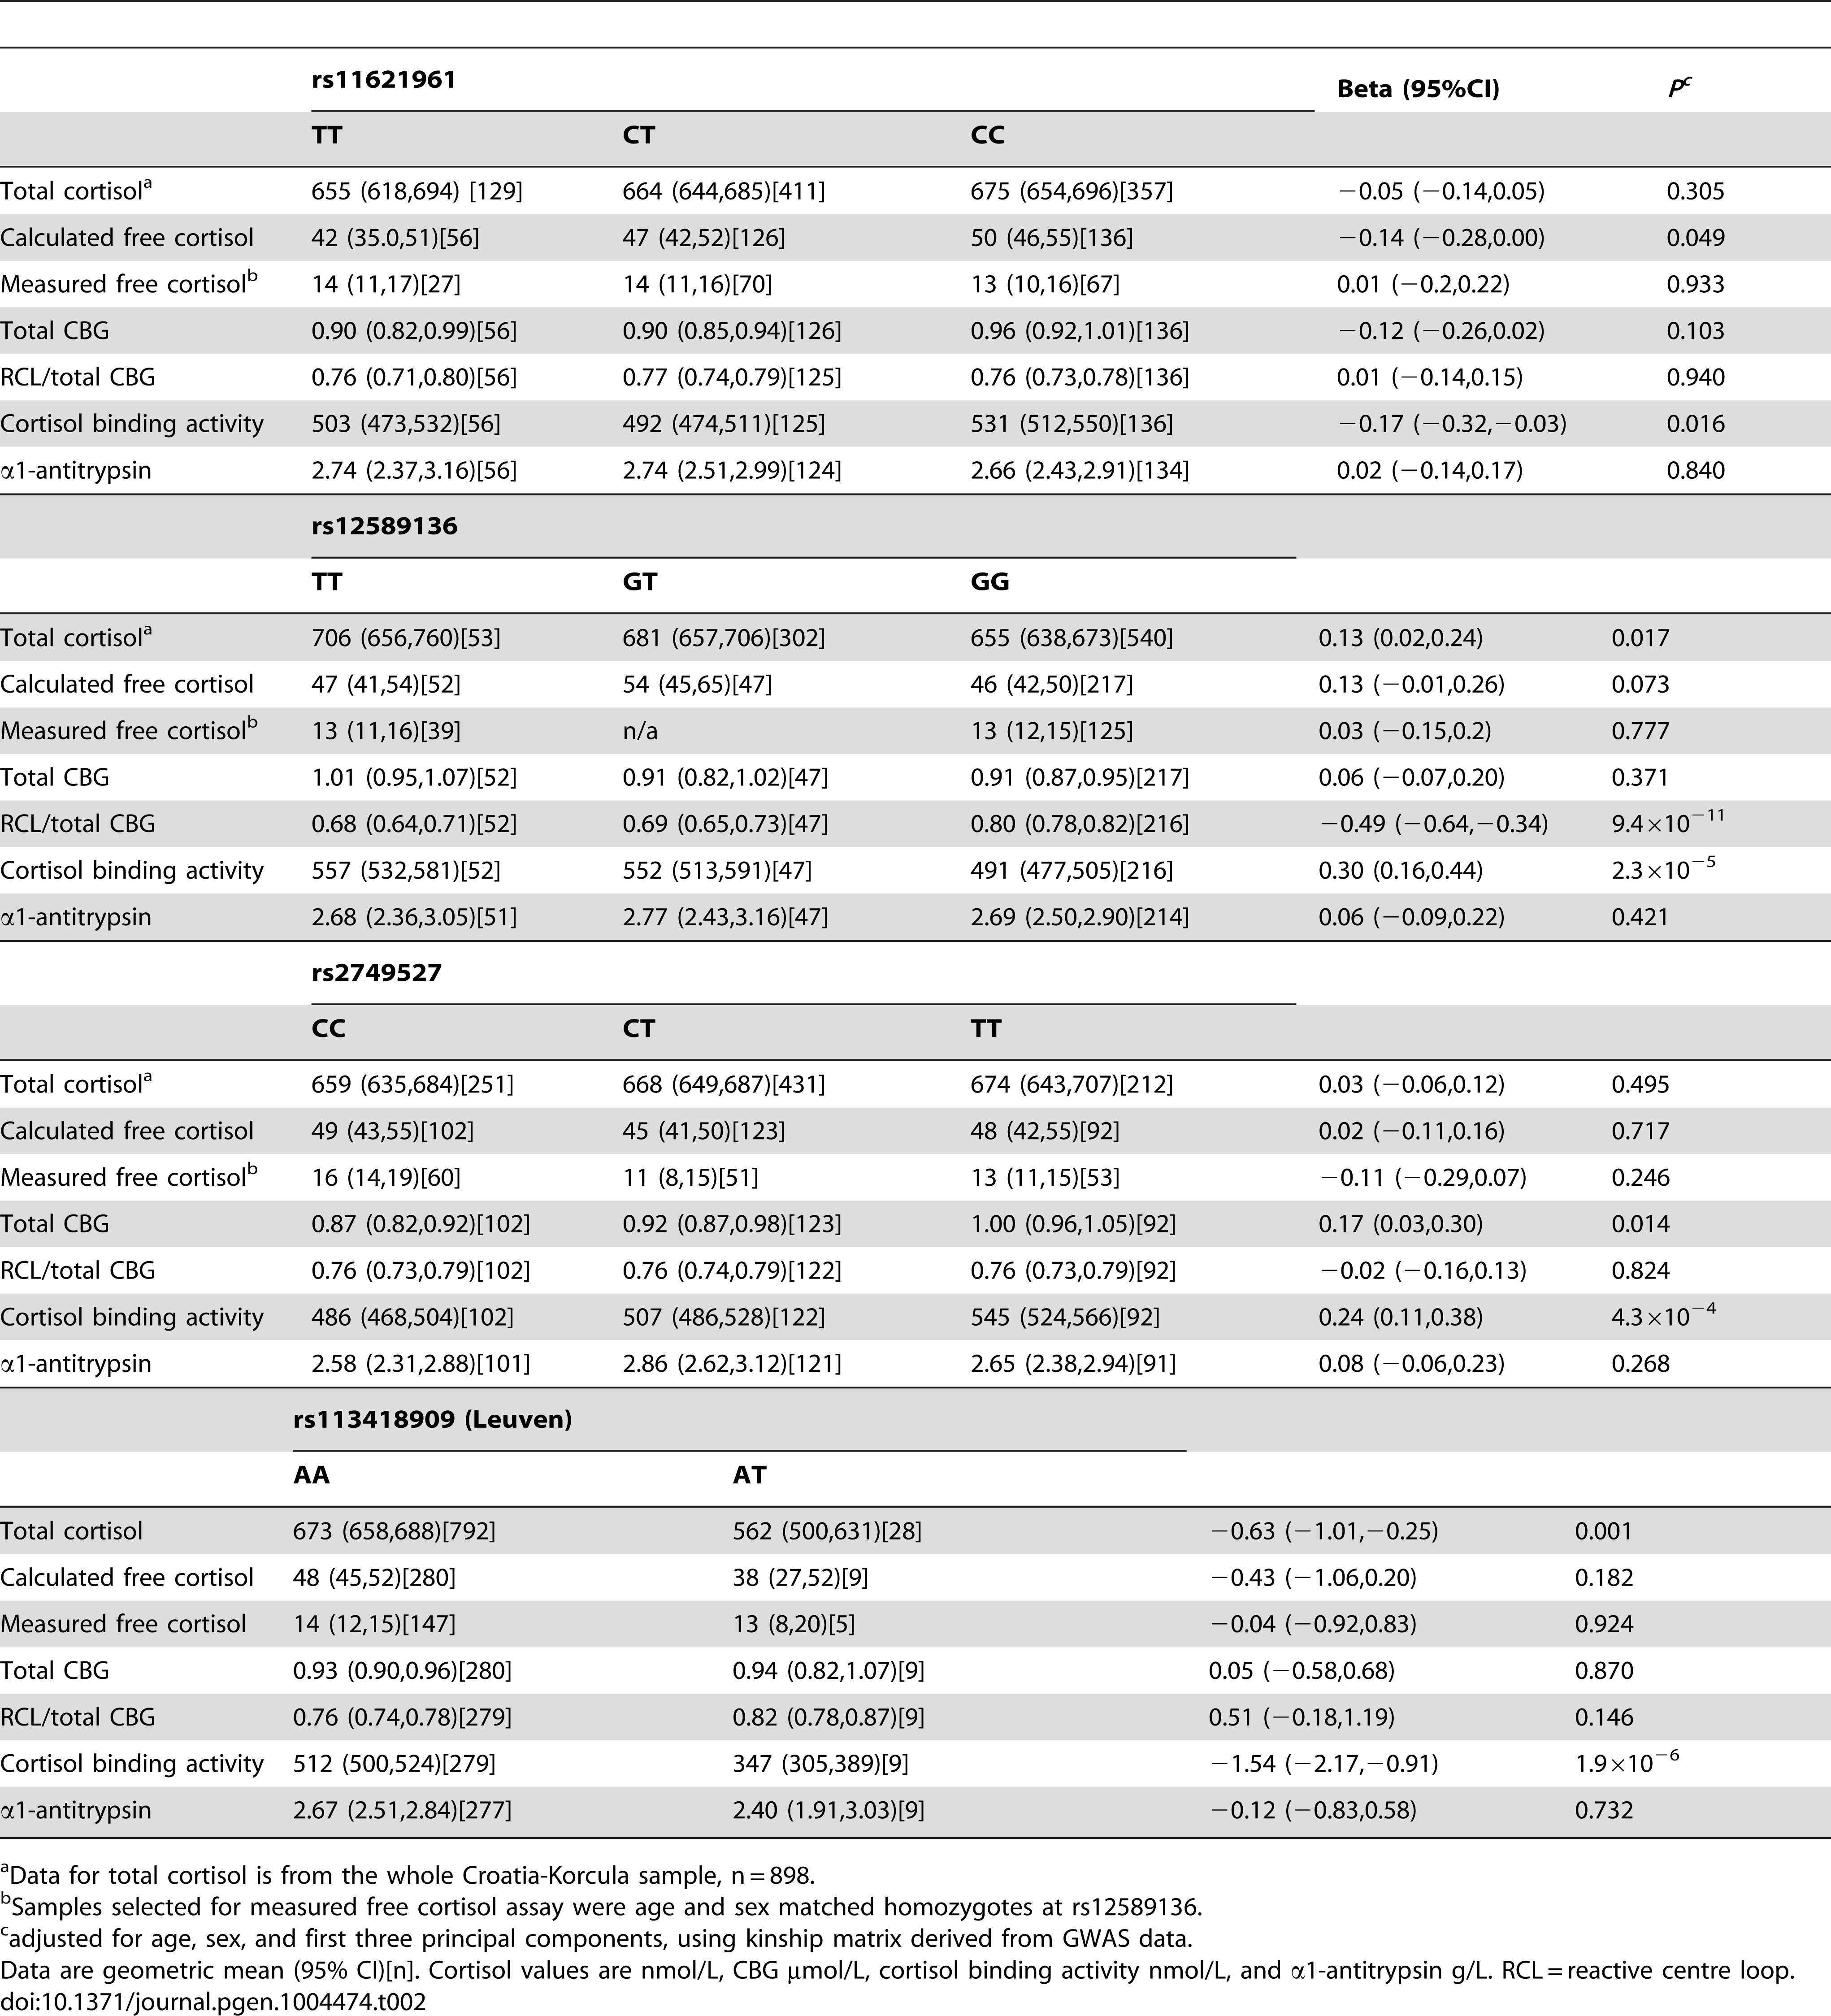 Functional consequences of variants in the <i>SERPINA6/A1</i> locus significantly associated with morning plasma cortisol in GWAMA, and of the Leuven variant, in CROATIA-Korcula.